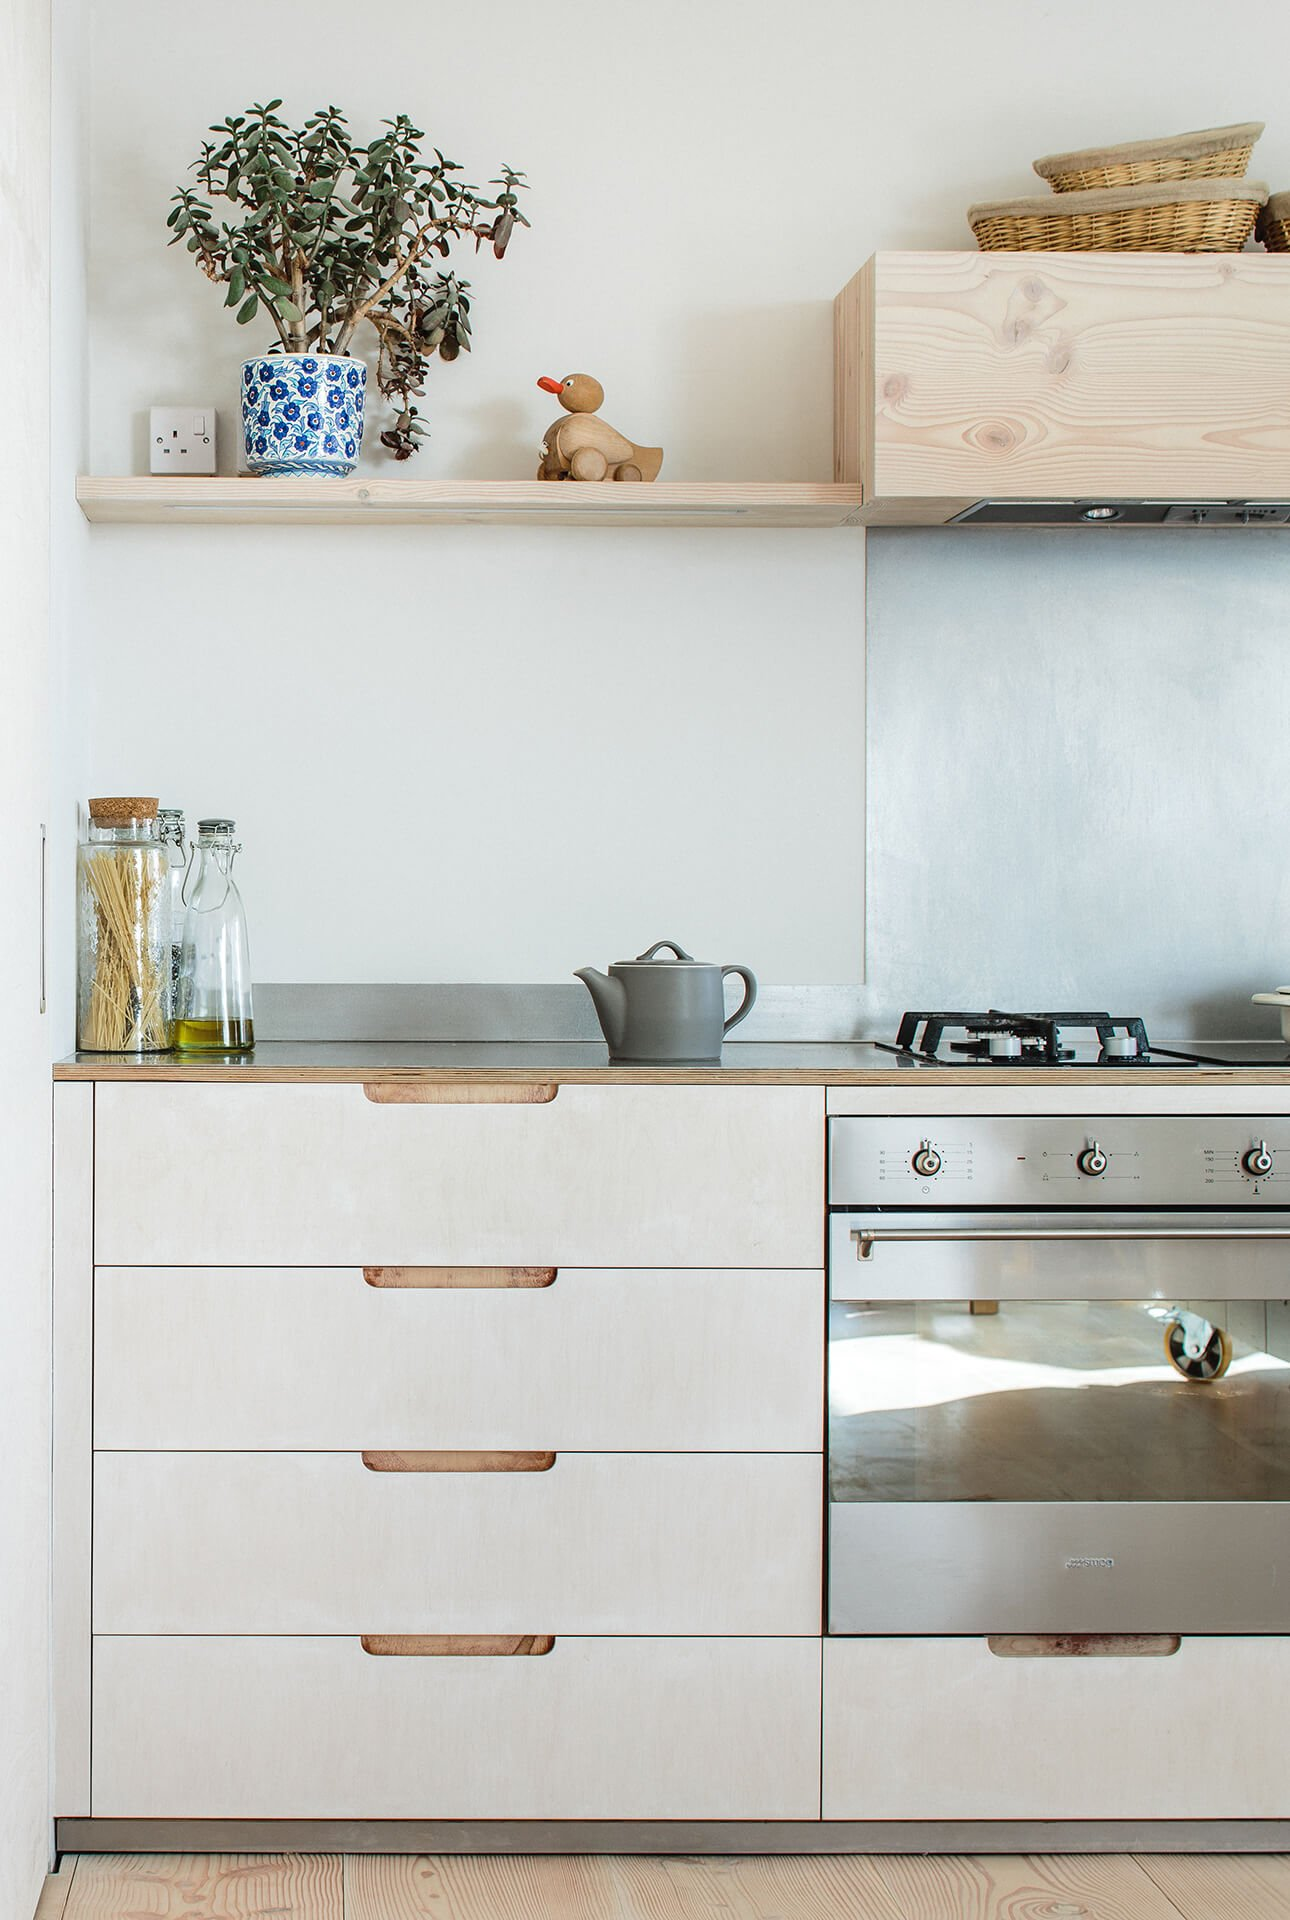 Contemporary Eco Kitchen with lye treated drawers and Smeg oven